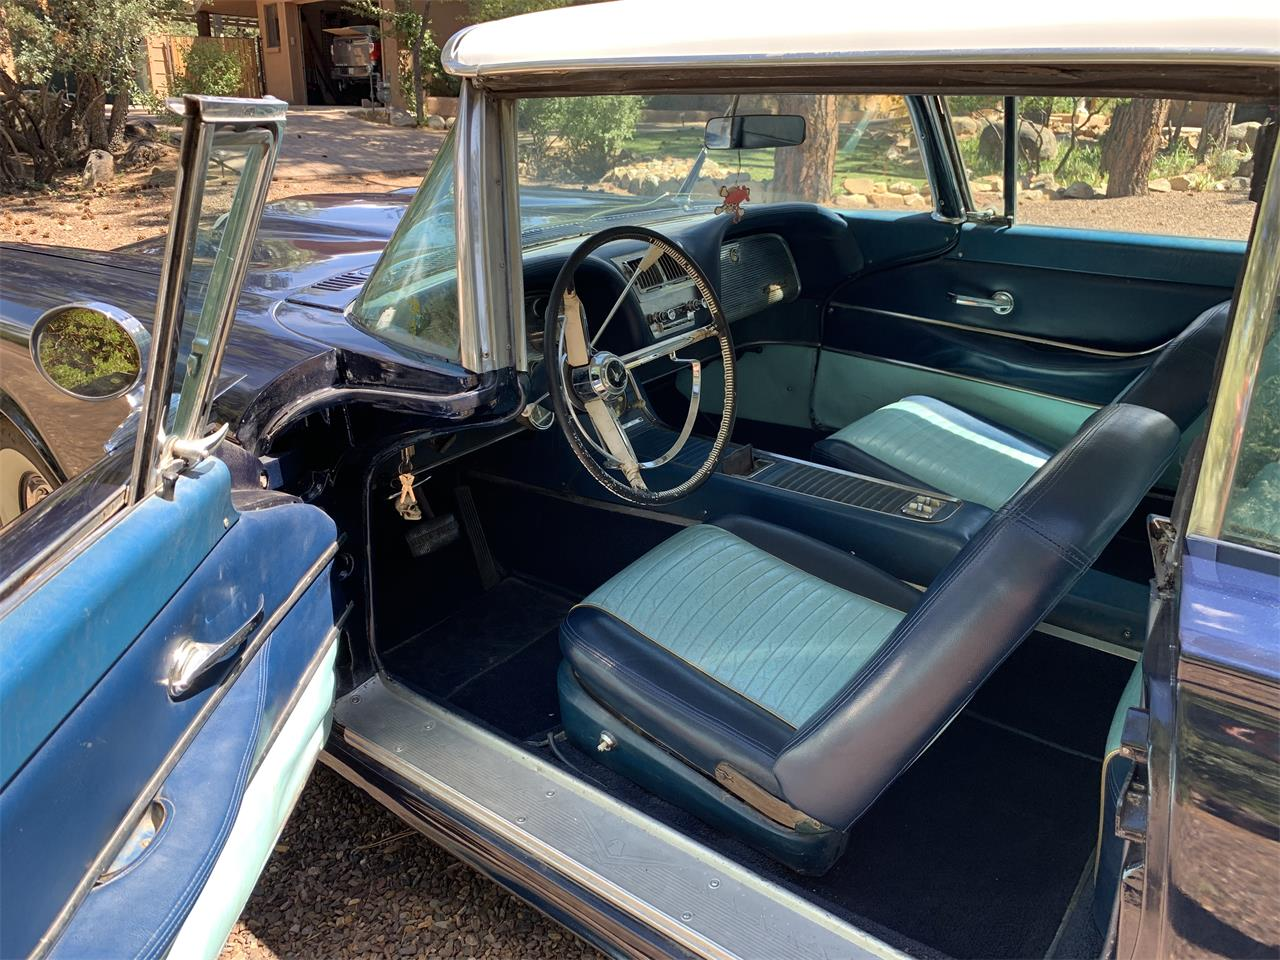 Large Picture of Classic '59 Ford Thunderbird located in Arizona - $11,000.00 Offered by a Private Seller - OWY4